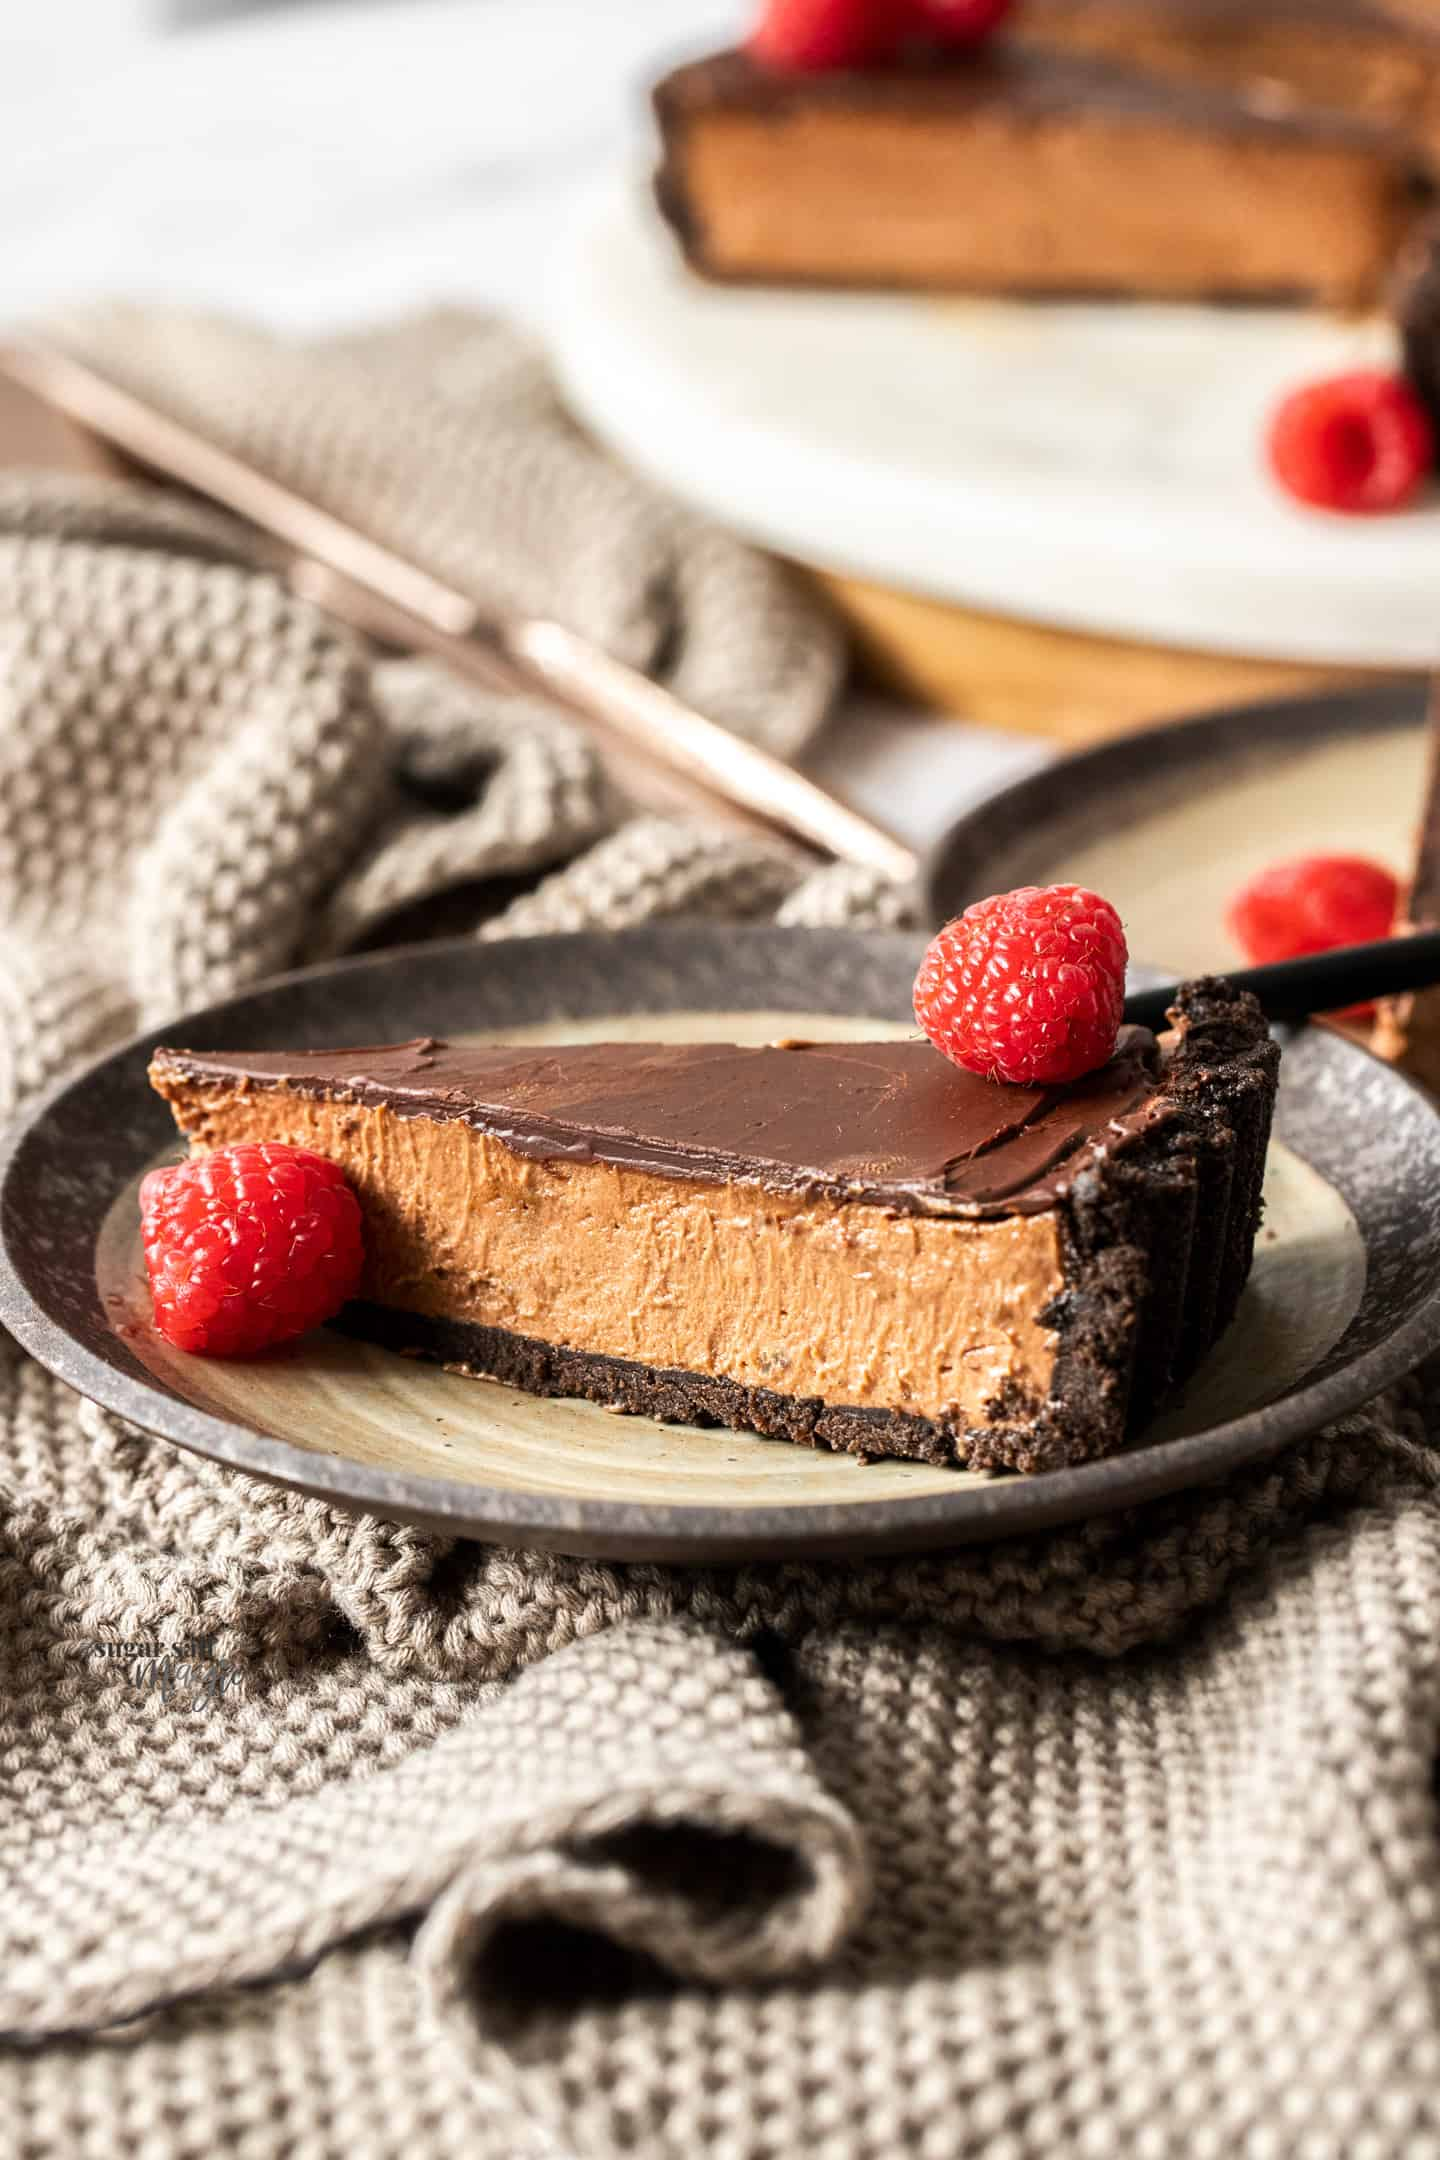 A slice of chocolate mousse tart on a brown cake plate with a crocheted napkin.